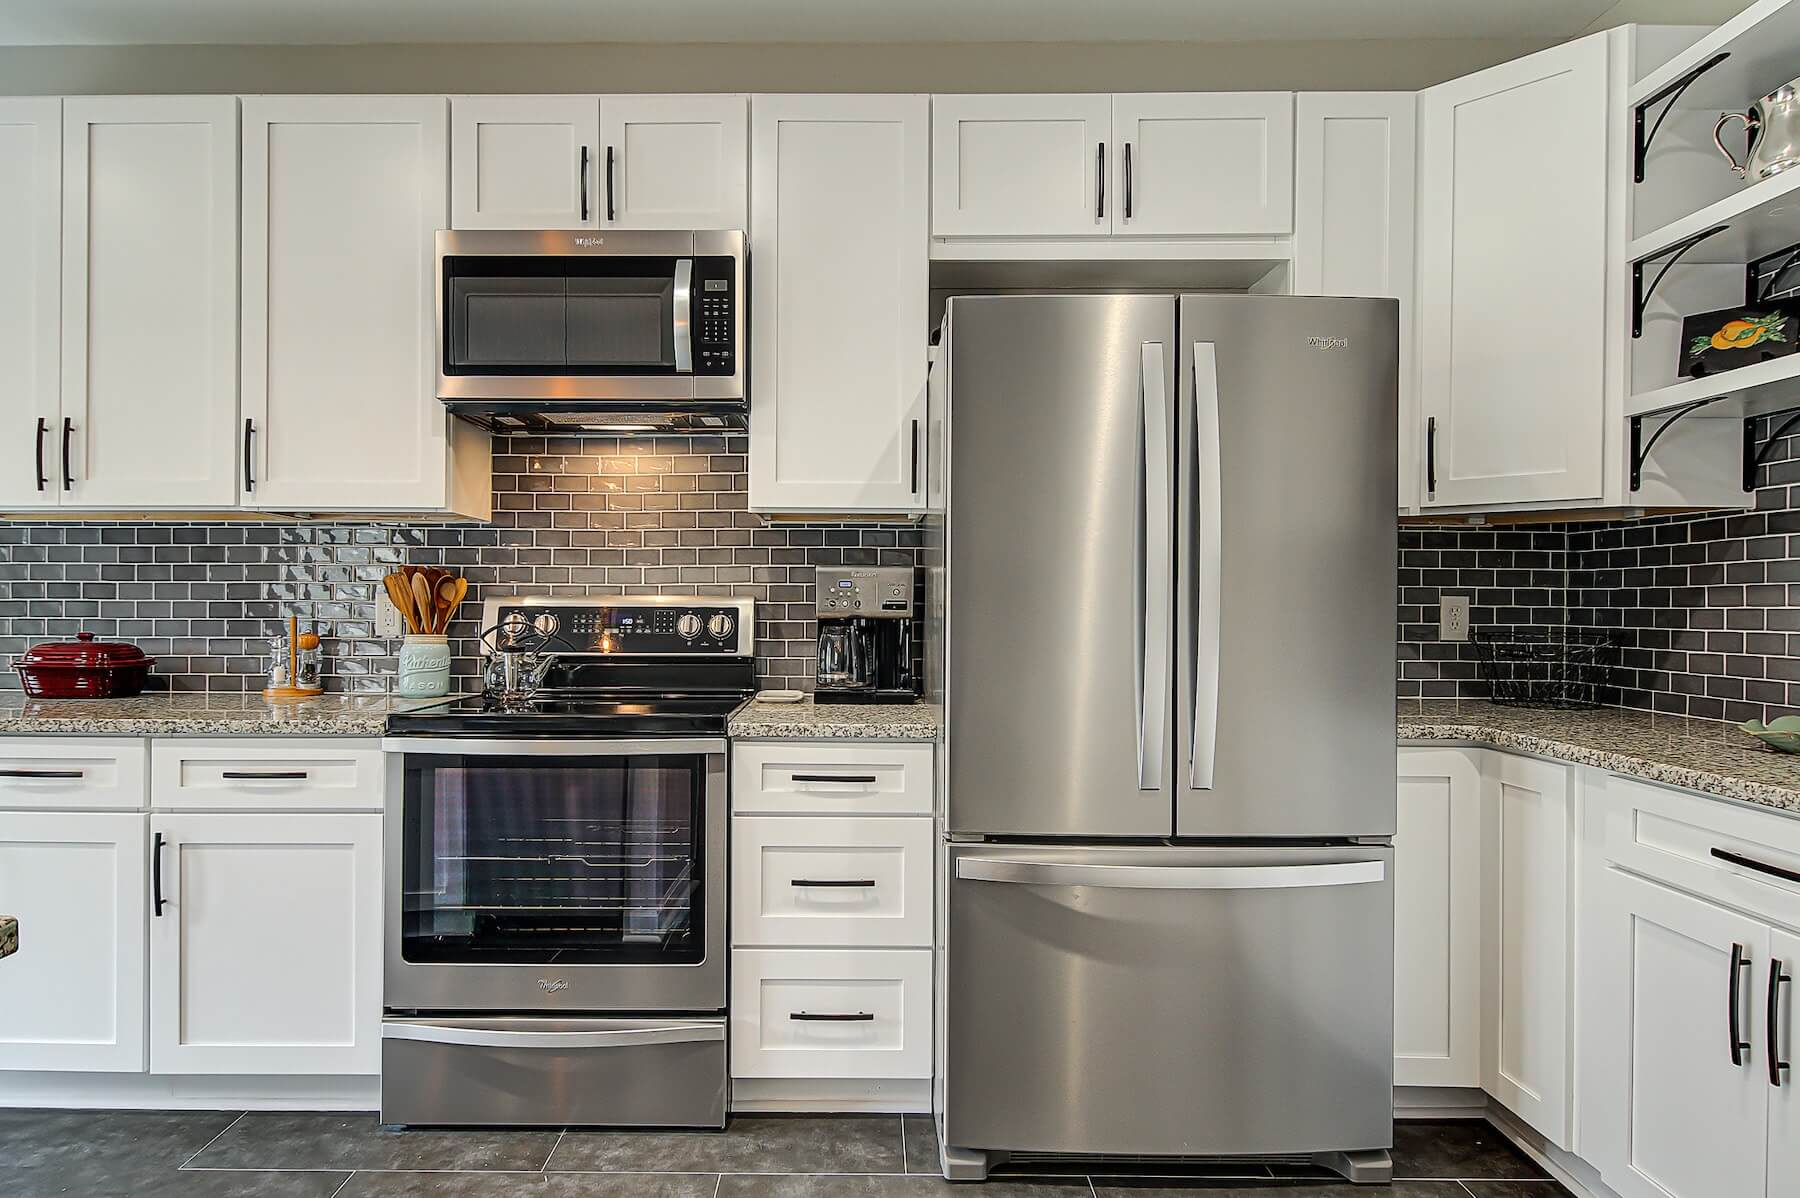 stainless steel appliances new kitchen remodel kernersville nc granite countertops white cabinets subway backsplash